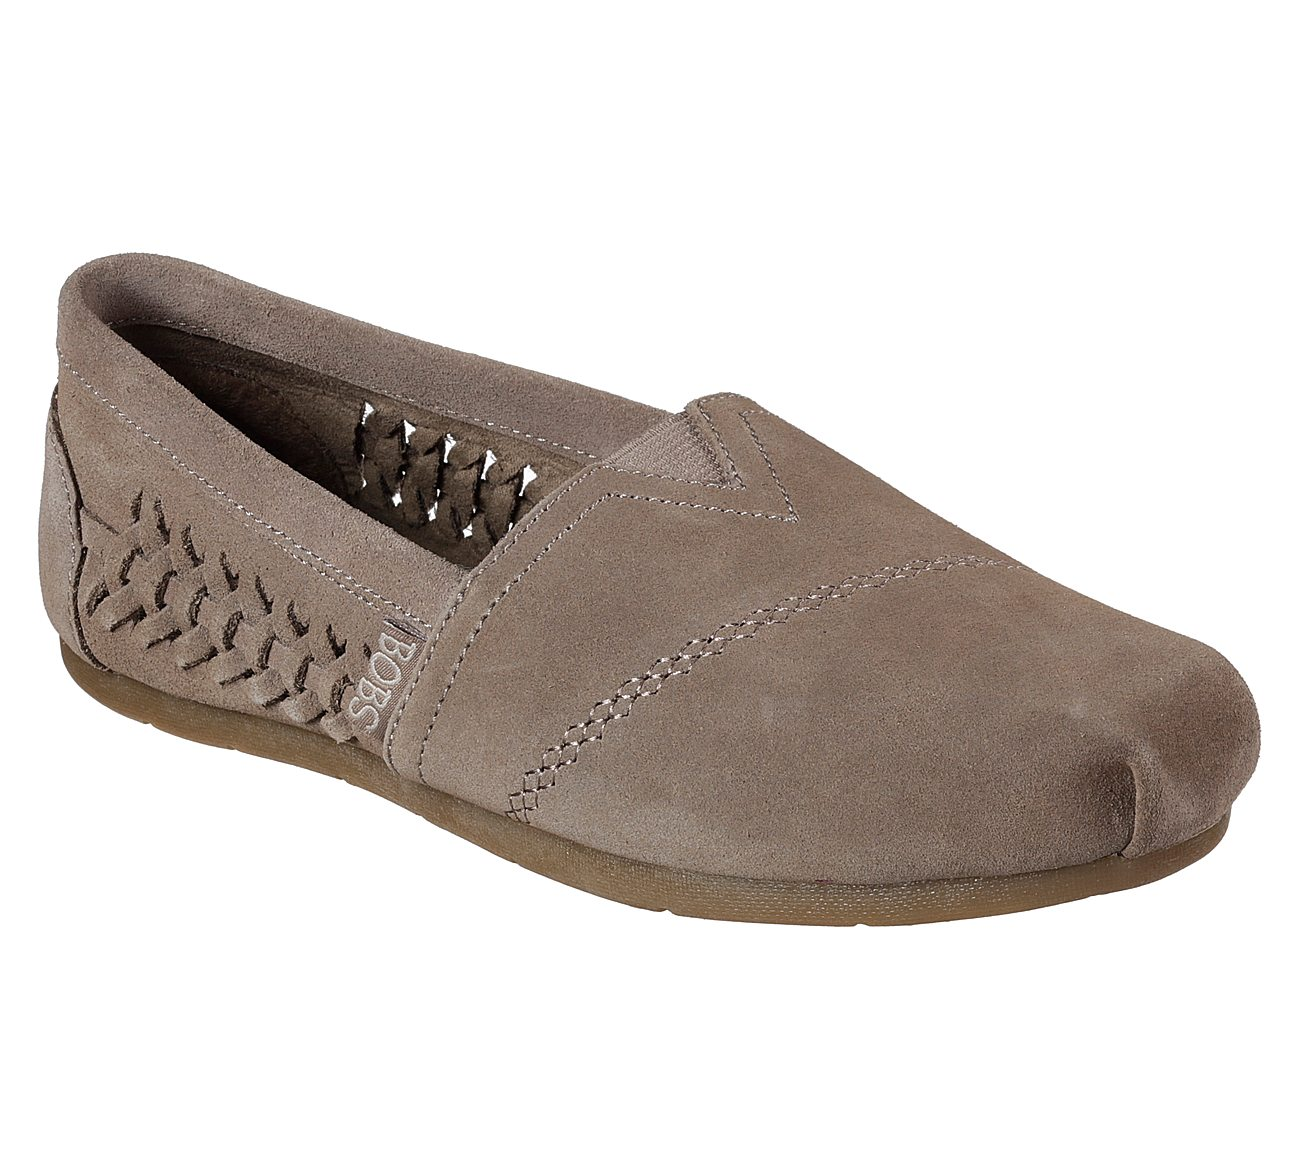 Buy SKECHERS Luxe BOBS BOBS Boho Crown BOBS BOBS Schuhes only 32.00 4b1086